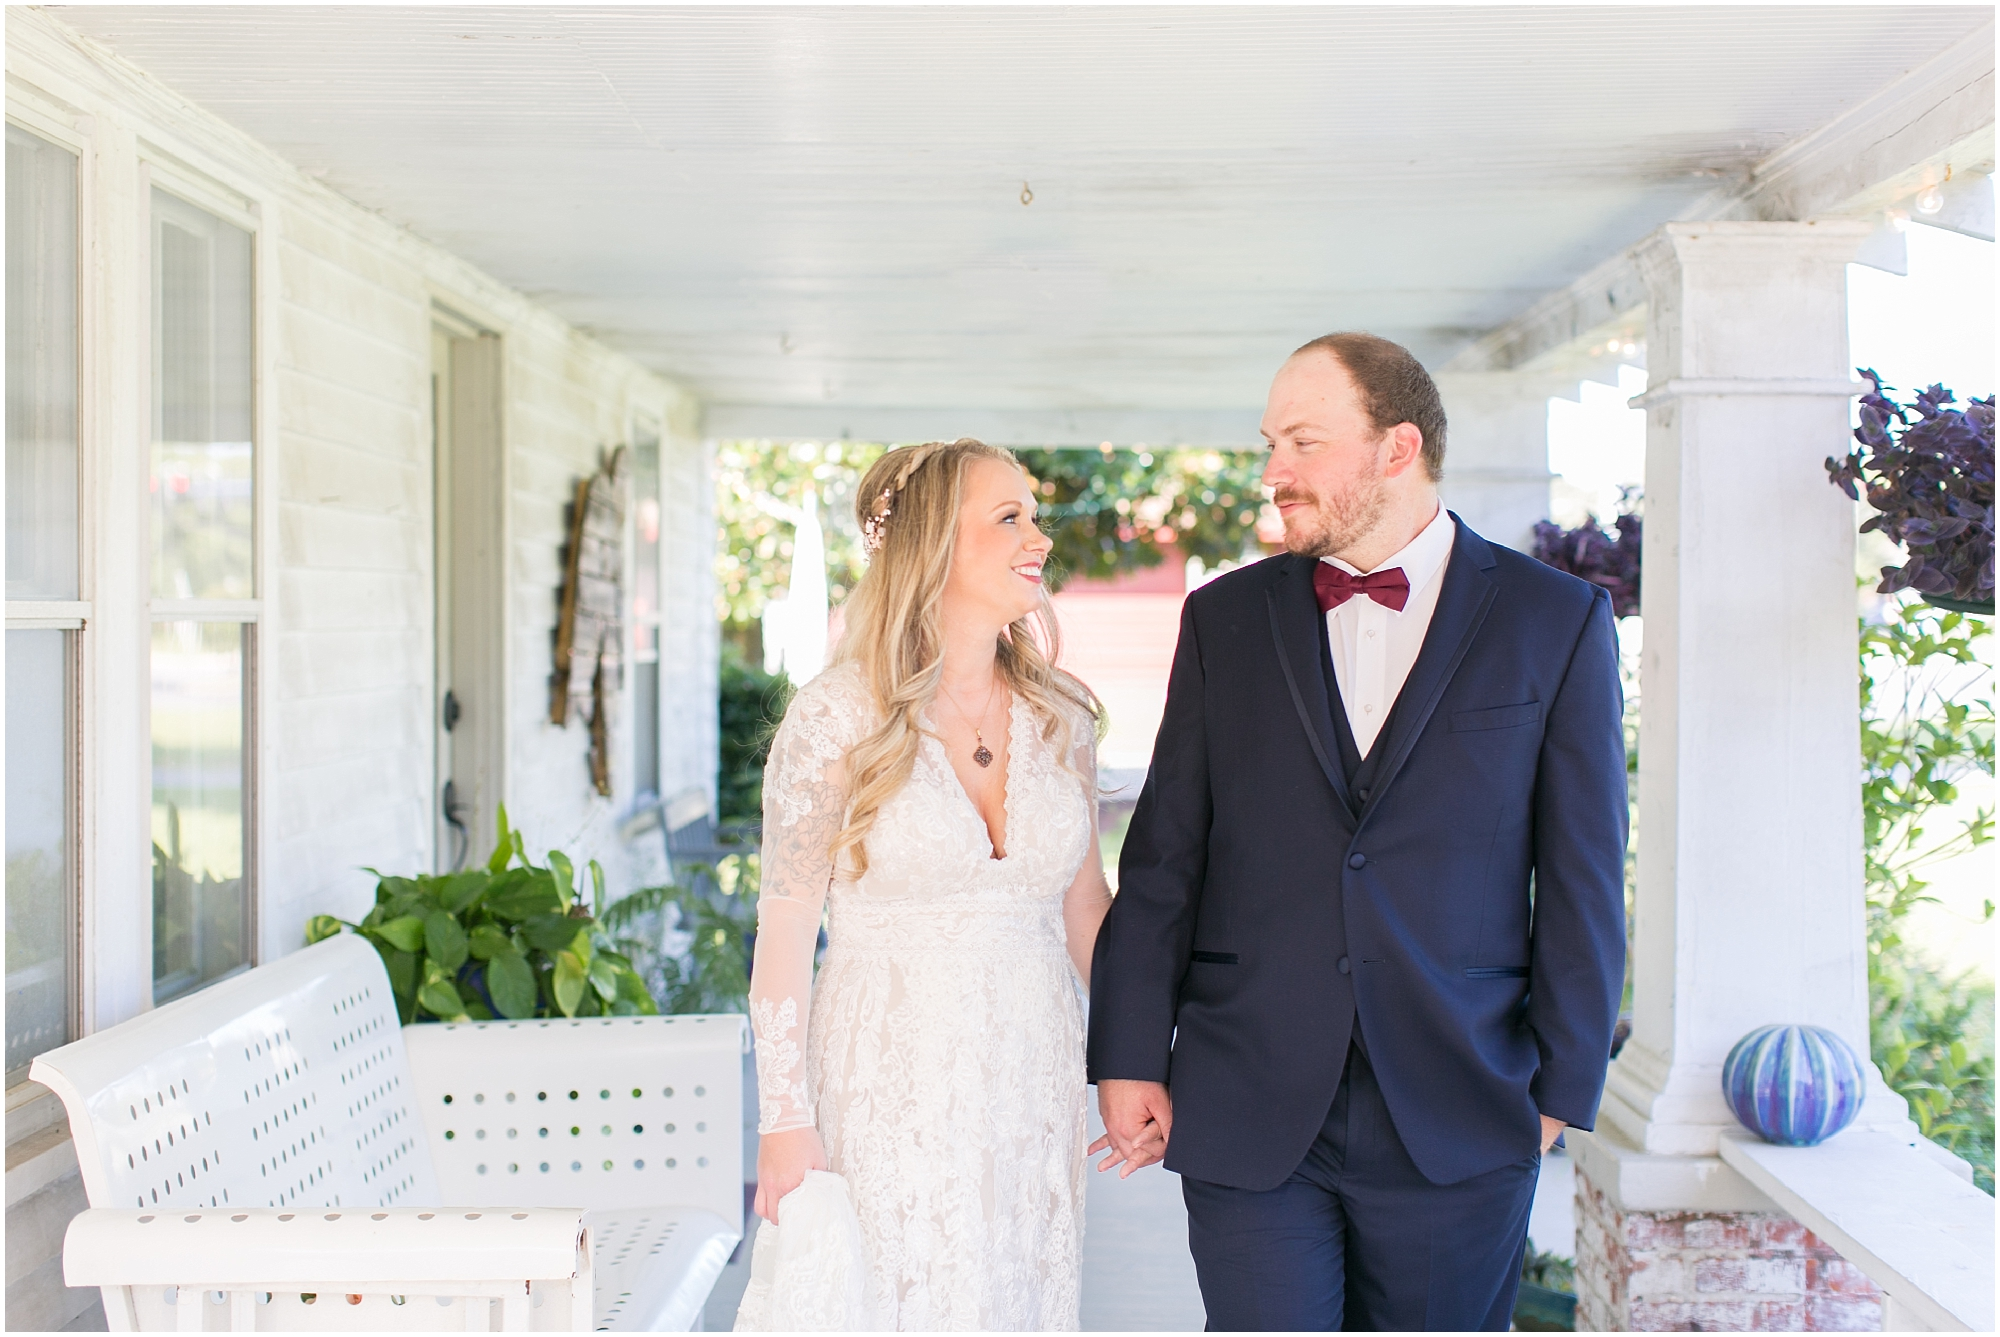 bride and groom on their wedding day photography boho wedding at The Tar Roof virginia beach wedding photography jessica ryan photography